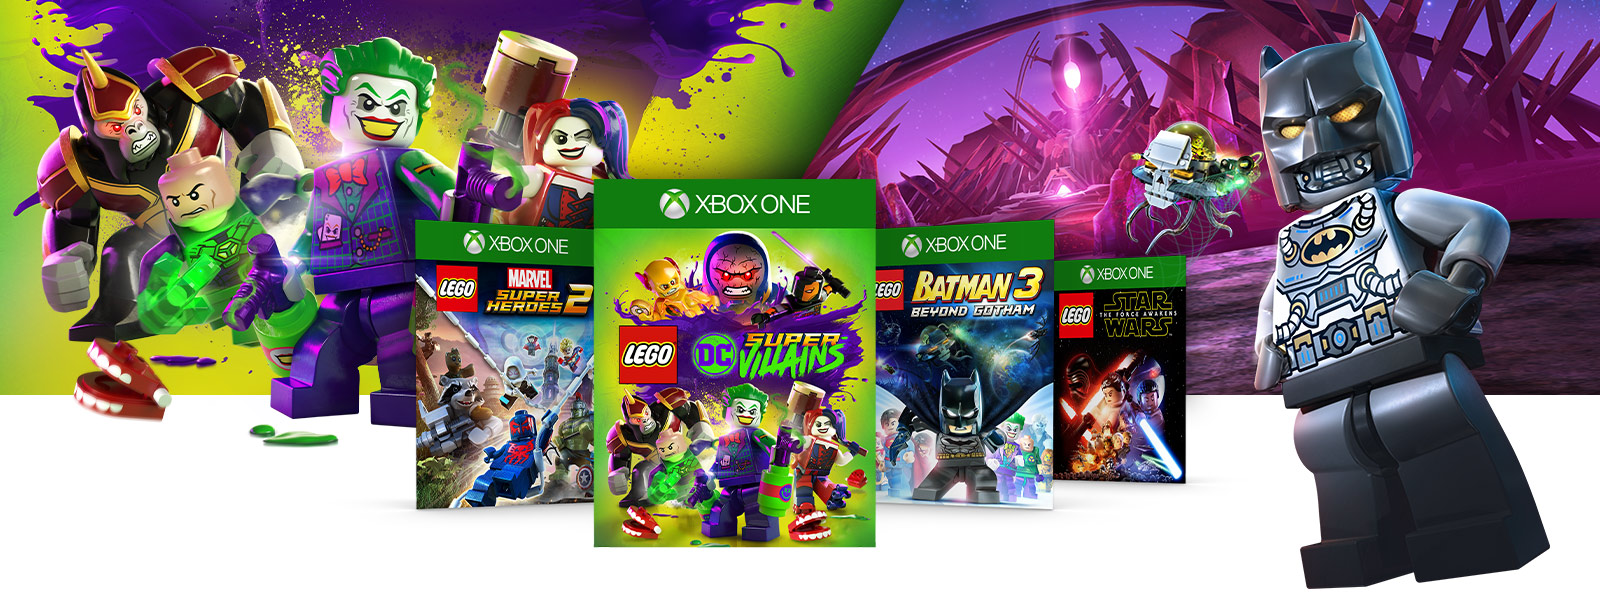 LEGO Batman and several LEGO DC Comics Super Villains next to box art for various LEGO Franchise games